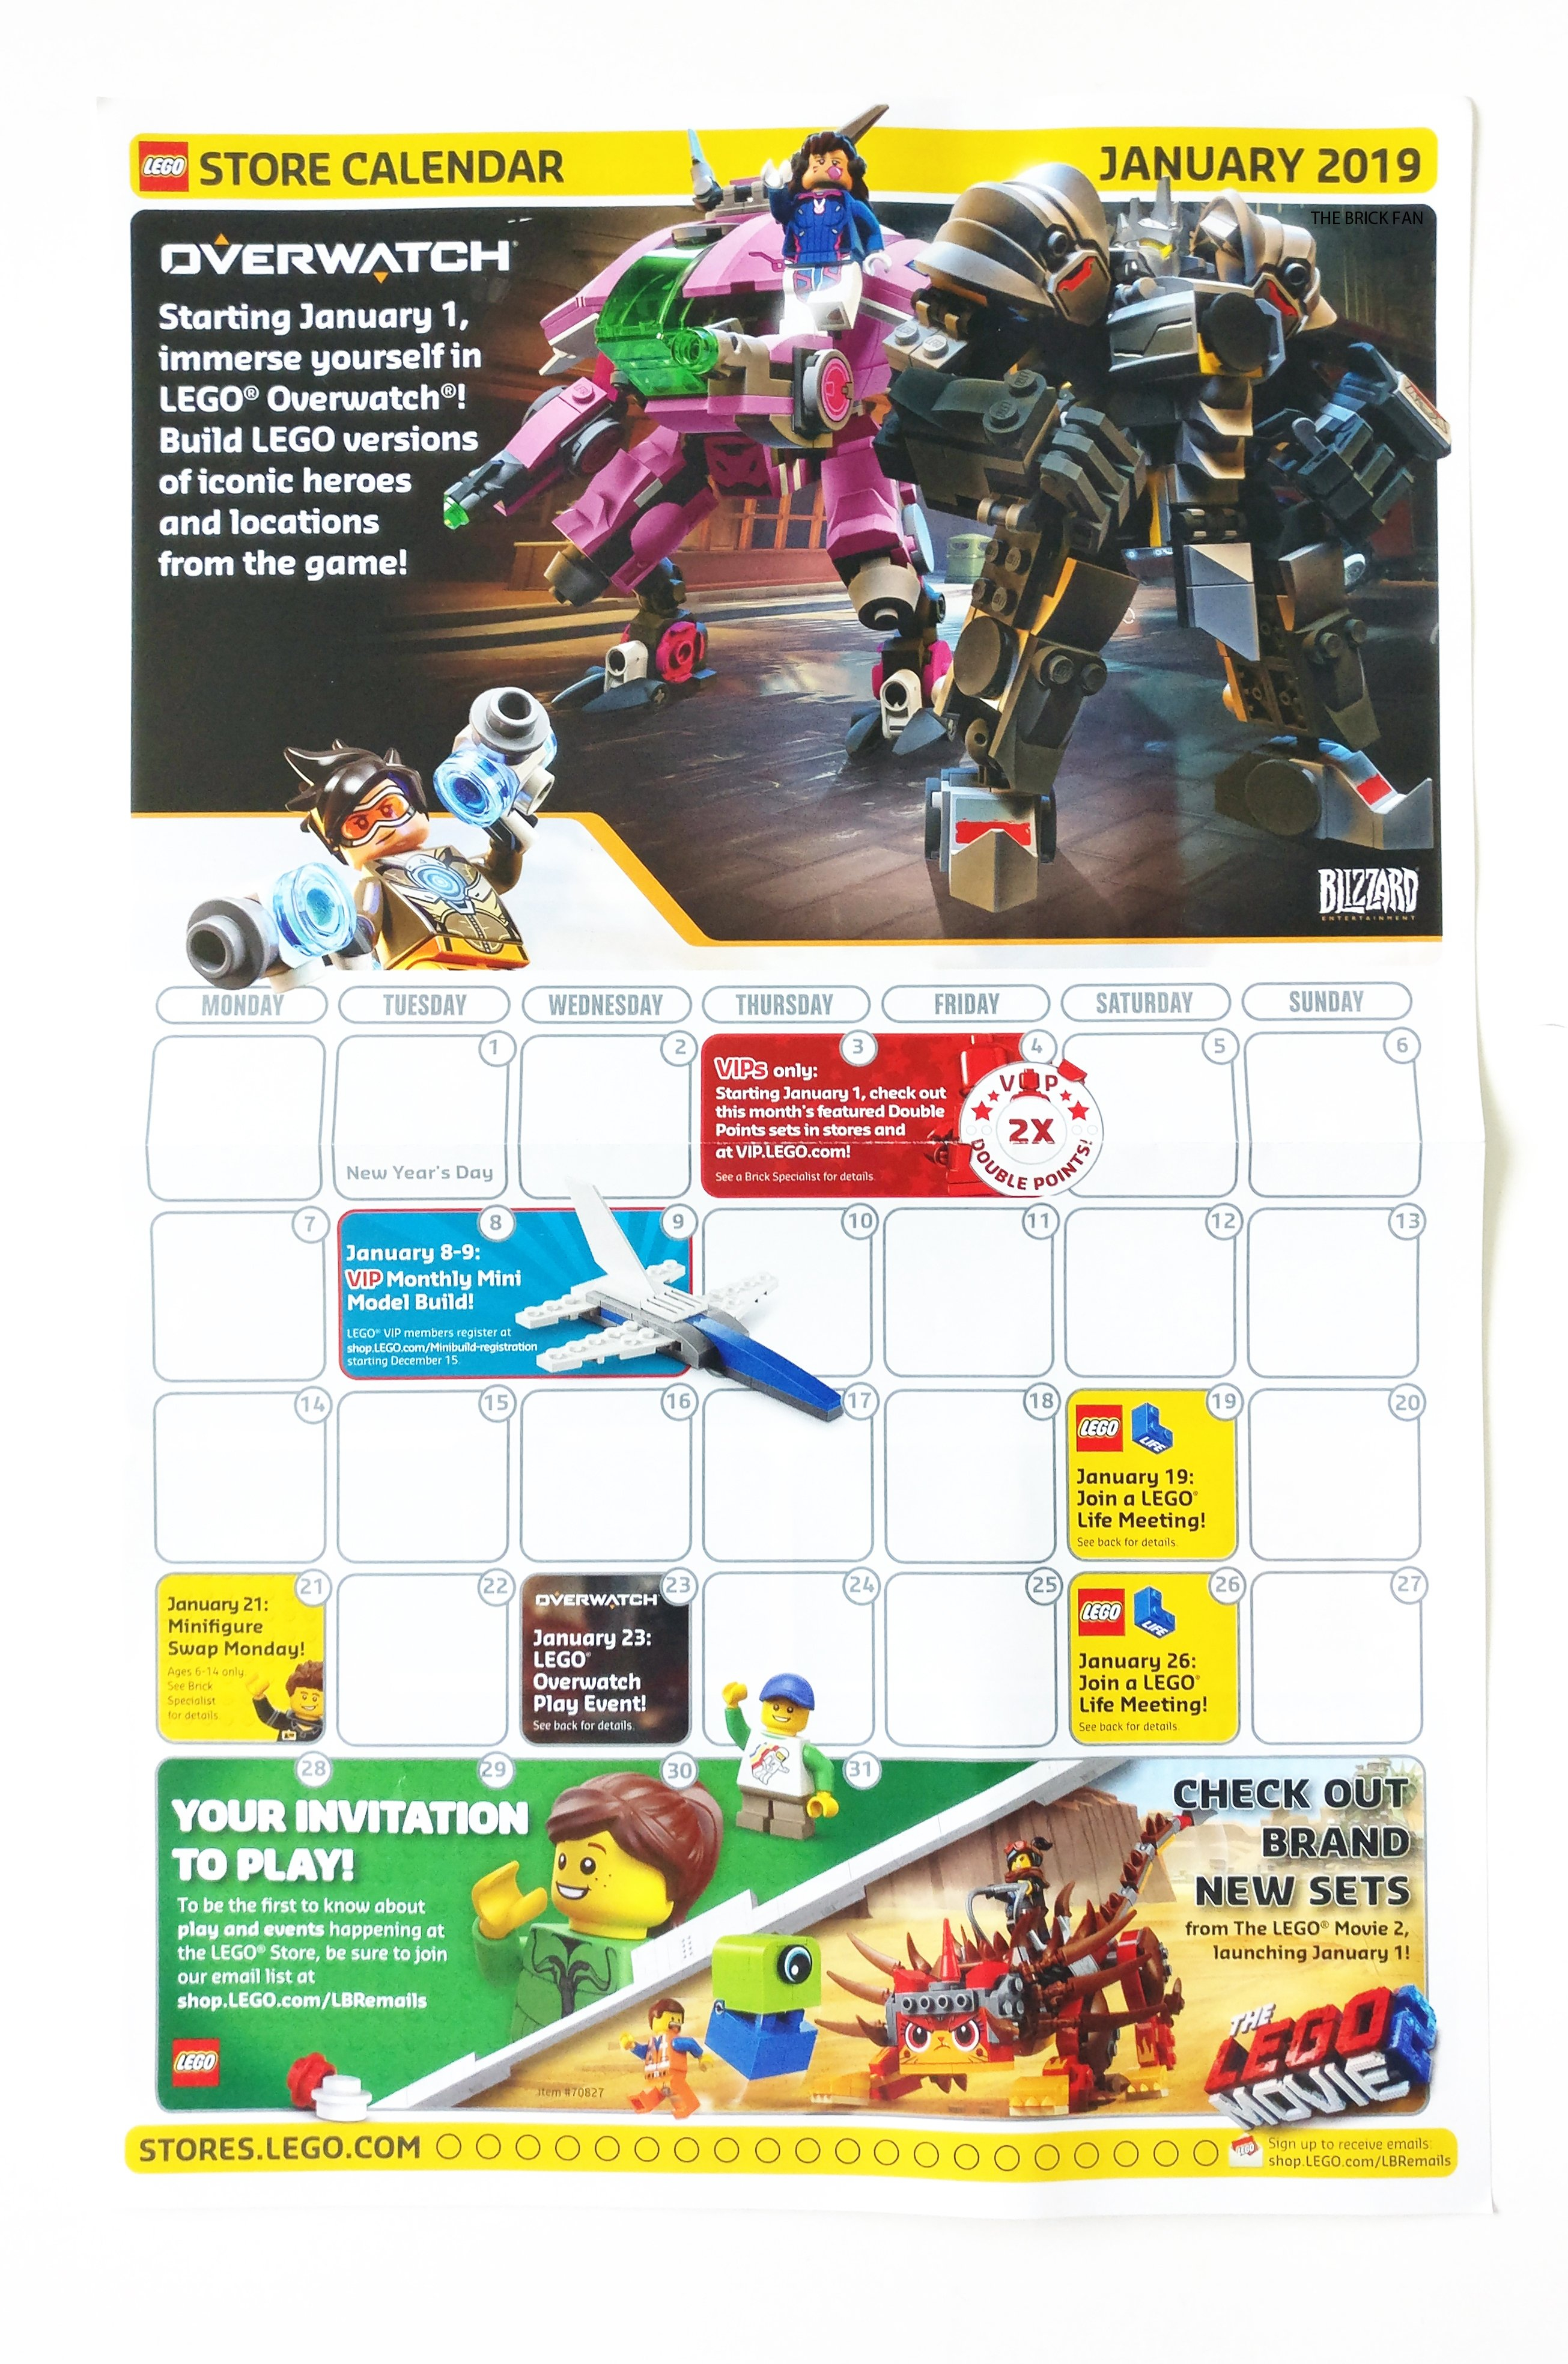 Lego January 2019 Store Calendar Promotions & Events - The Brick Fan Calendar 2019 In Stores